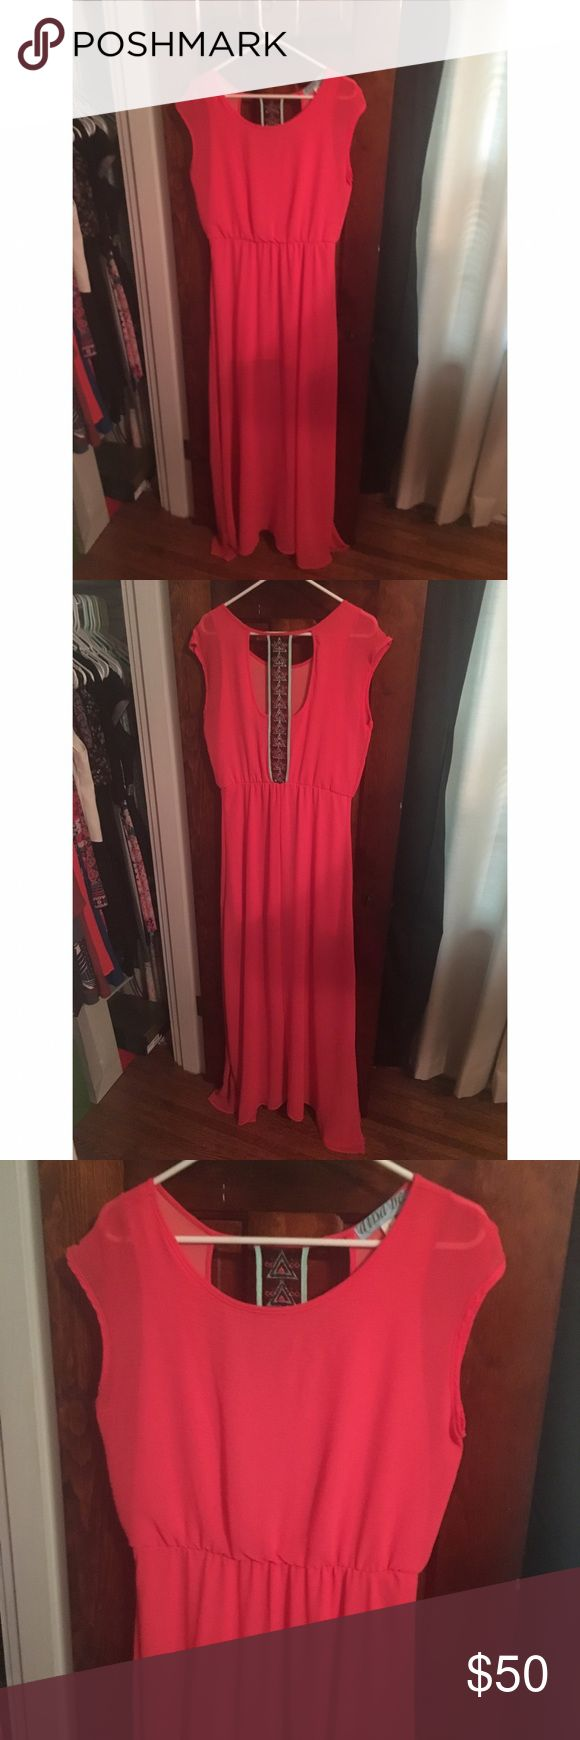 Coral Maxi Dress Beautiful maxi dress with beaded open back and slit down both sides. Worn once or twice, looks brand new! Aina Be Dresses Maxi